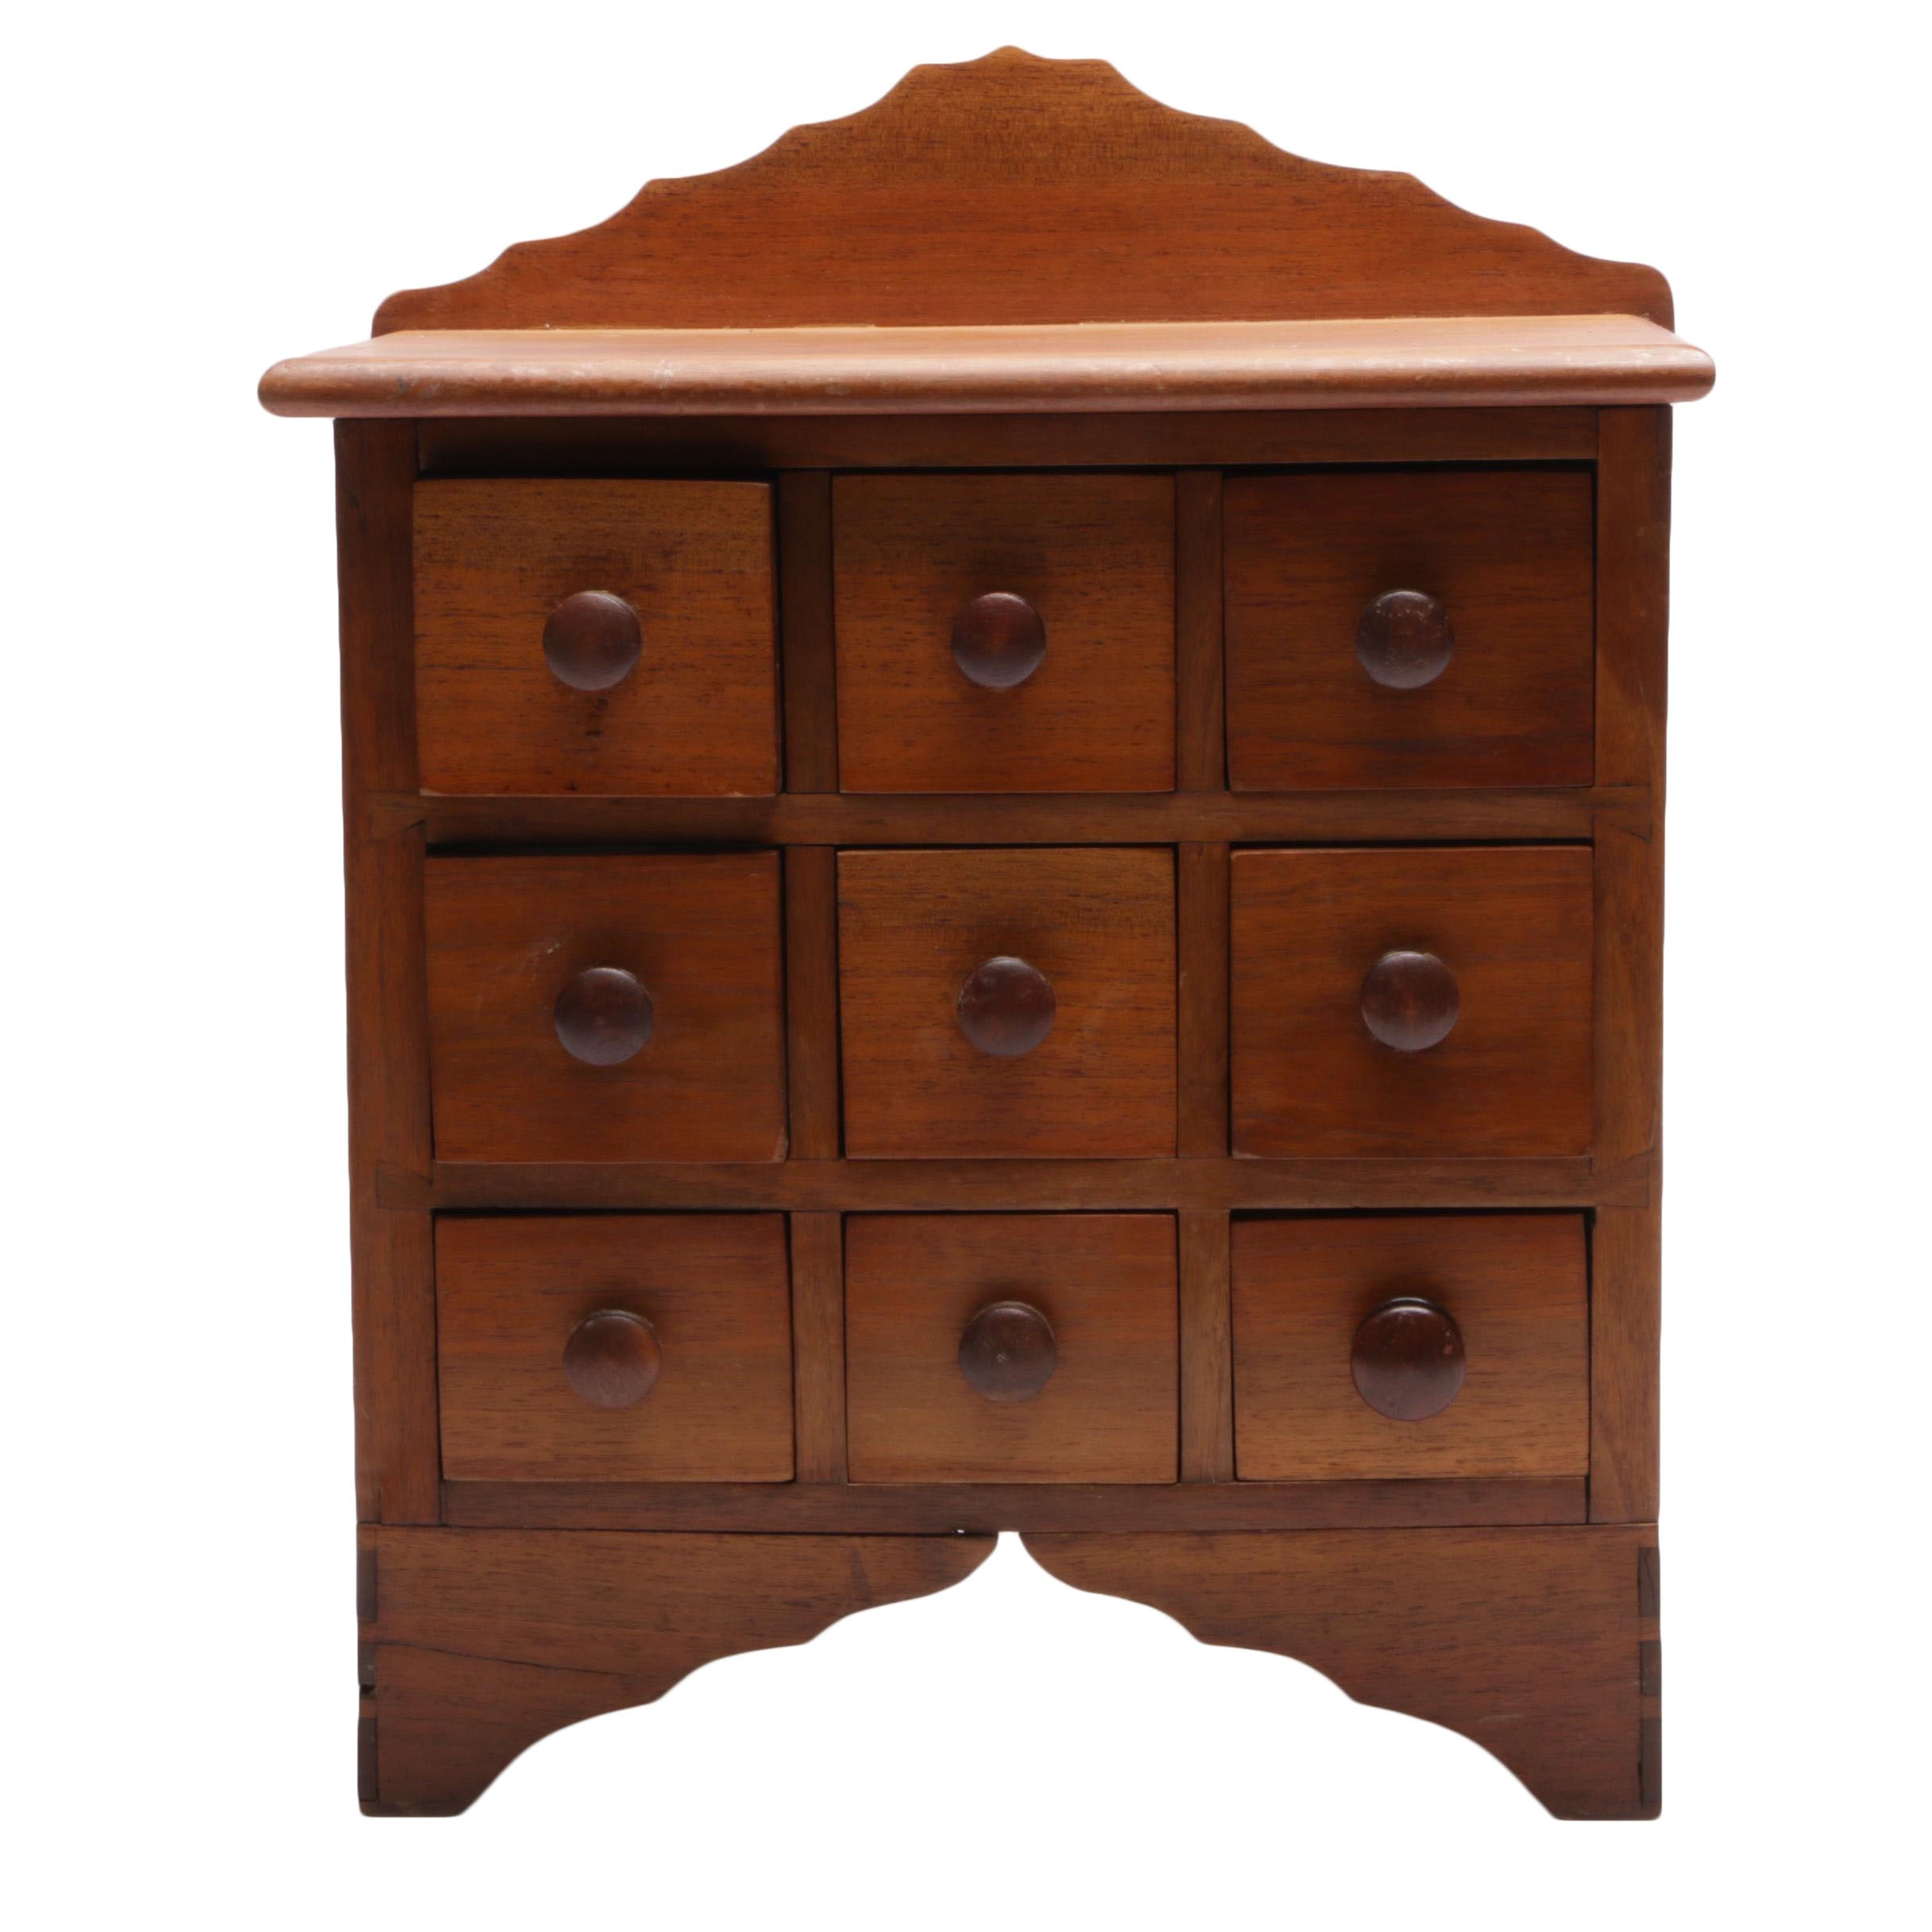 Early American Style Spice Chest in Walnut